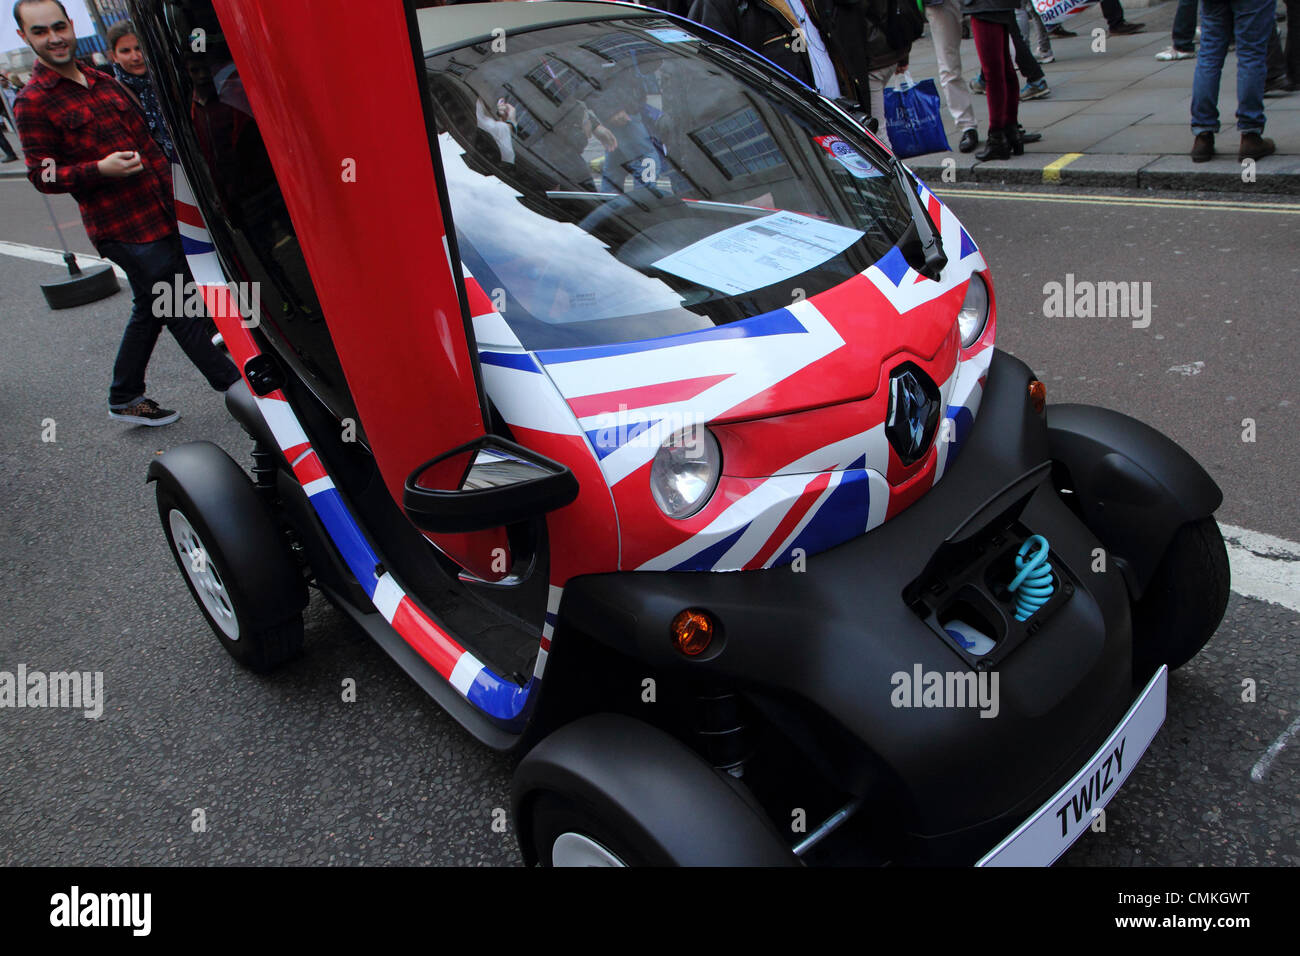 The Renault Twizy  electric vehicle, Regent street open air motor show 2013, London, UK - Stock Image